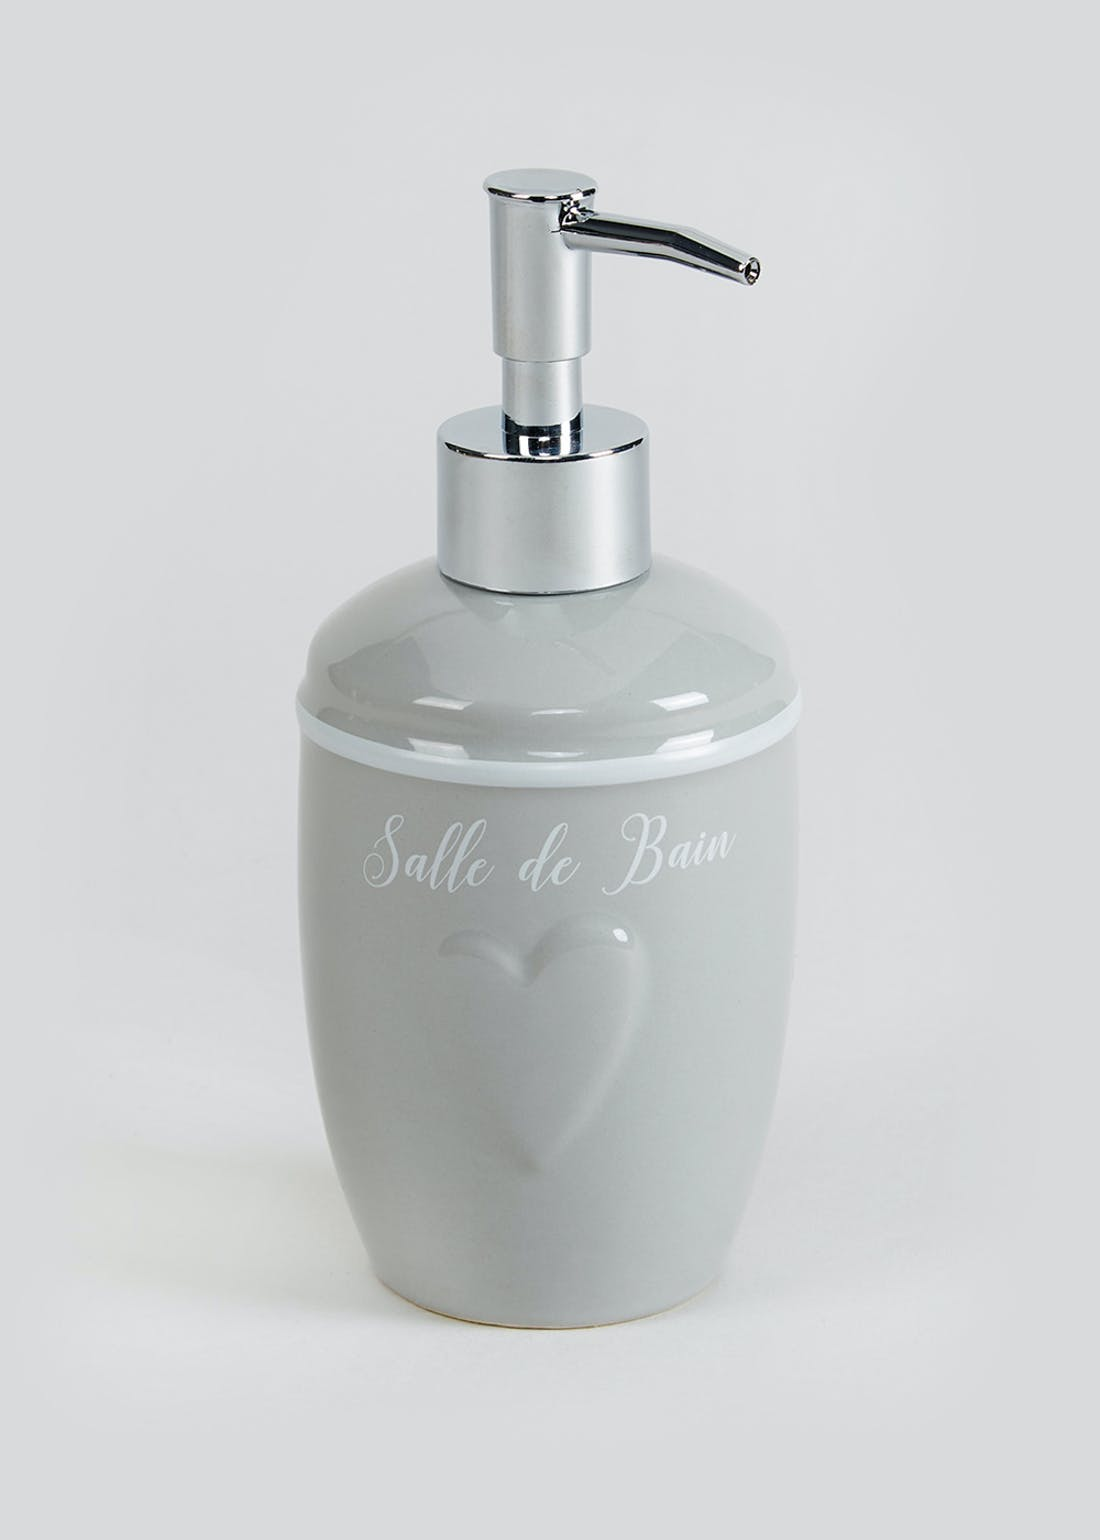 Heart Ceramic Soap Dispenser (19cm x 8cm)